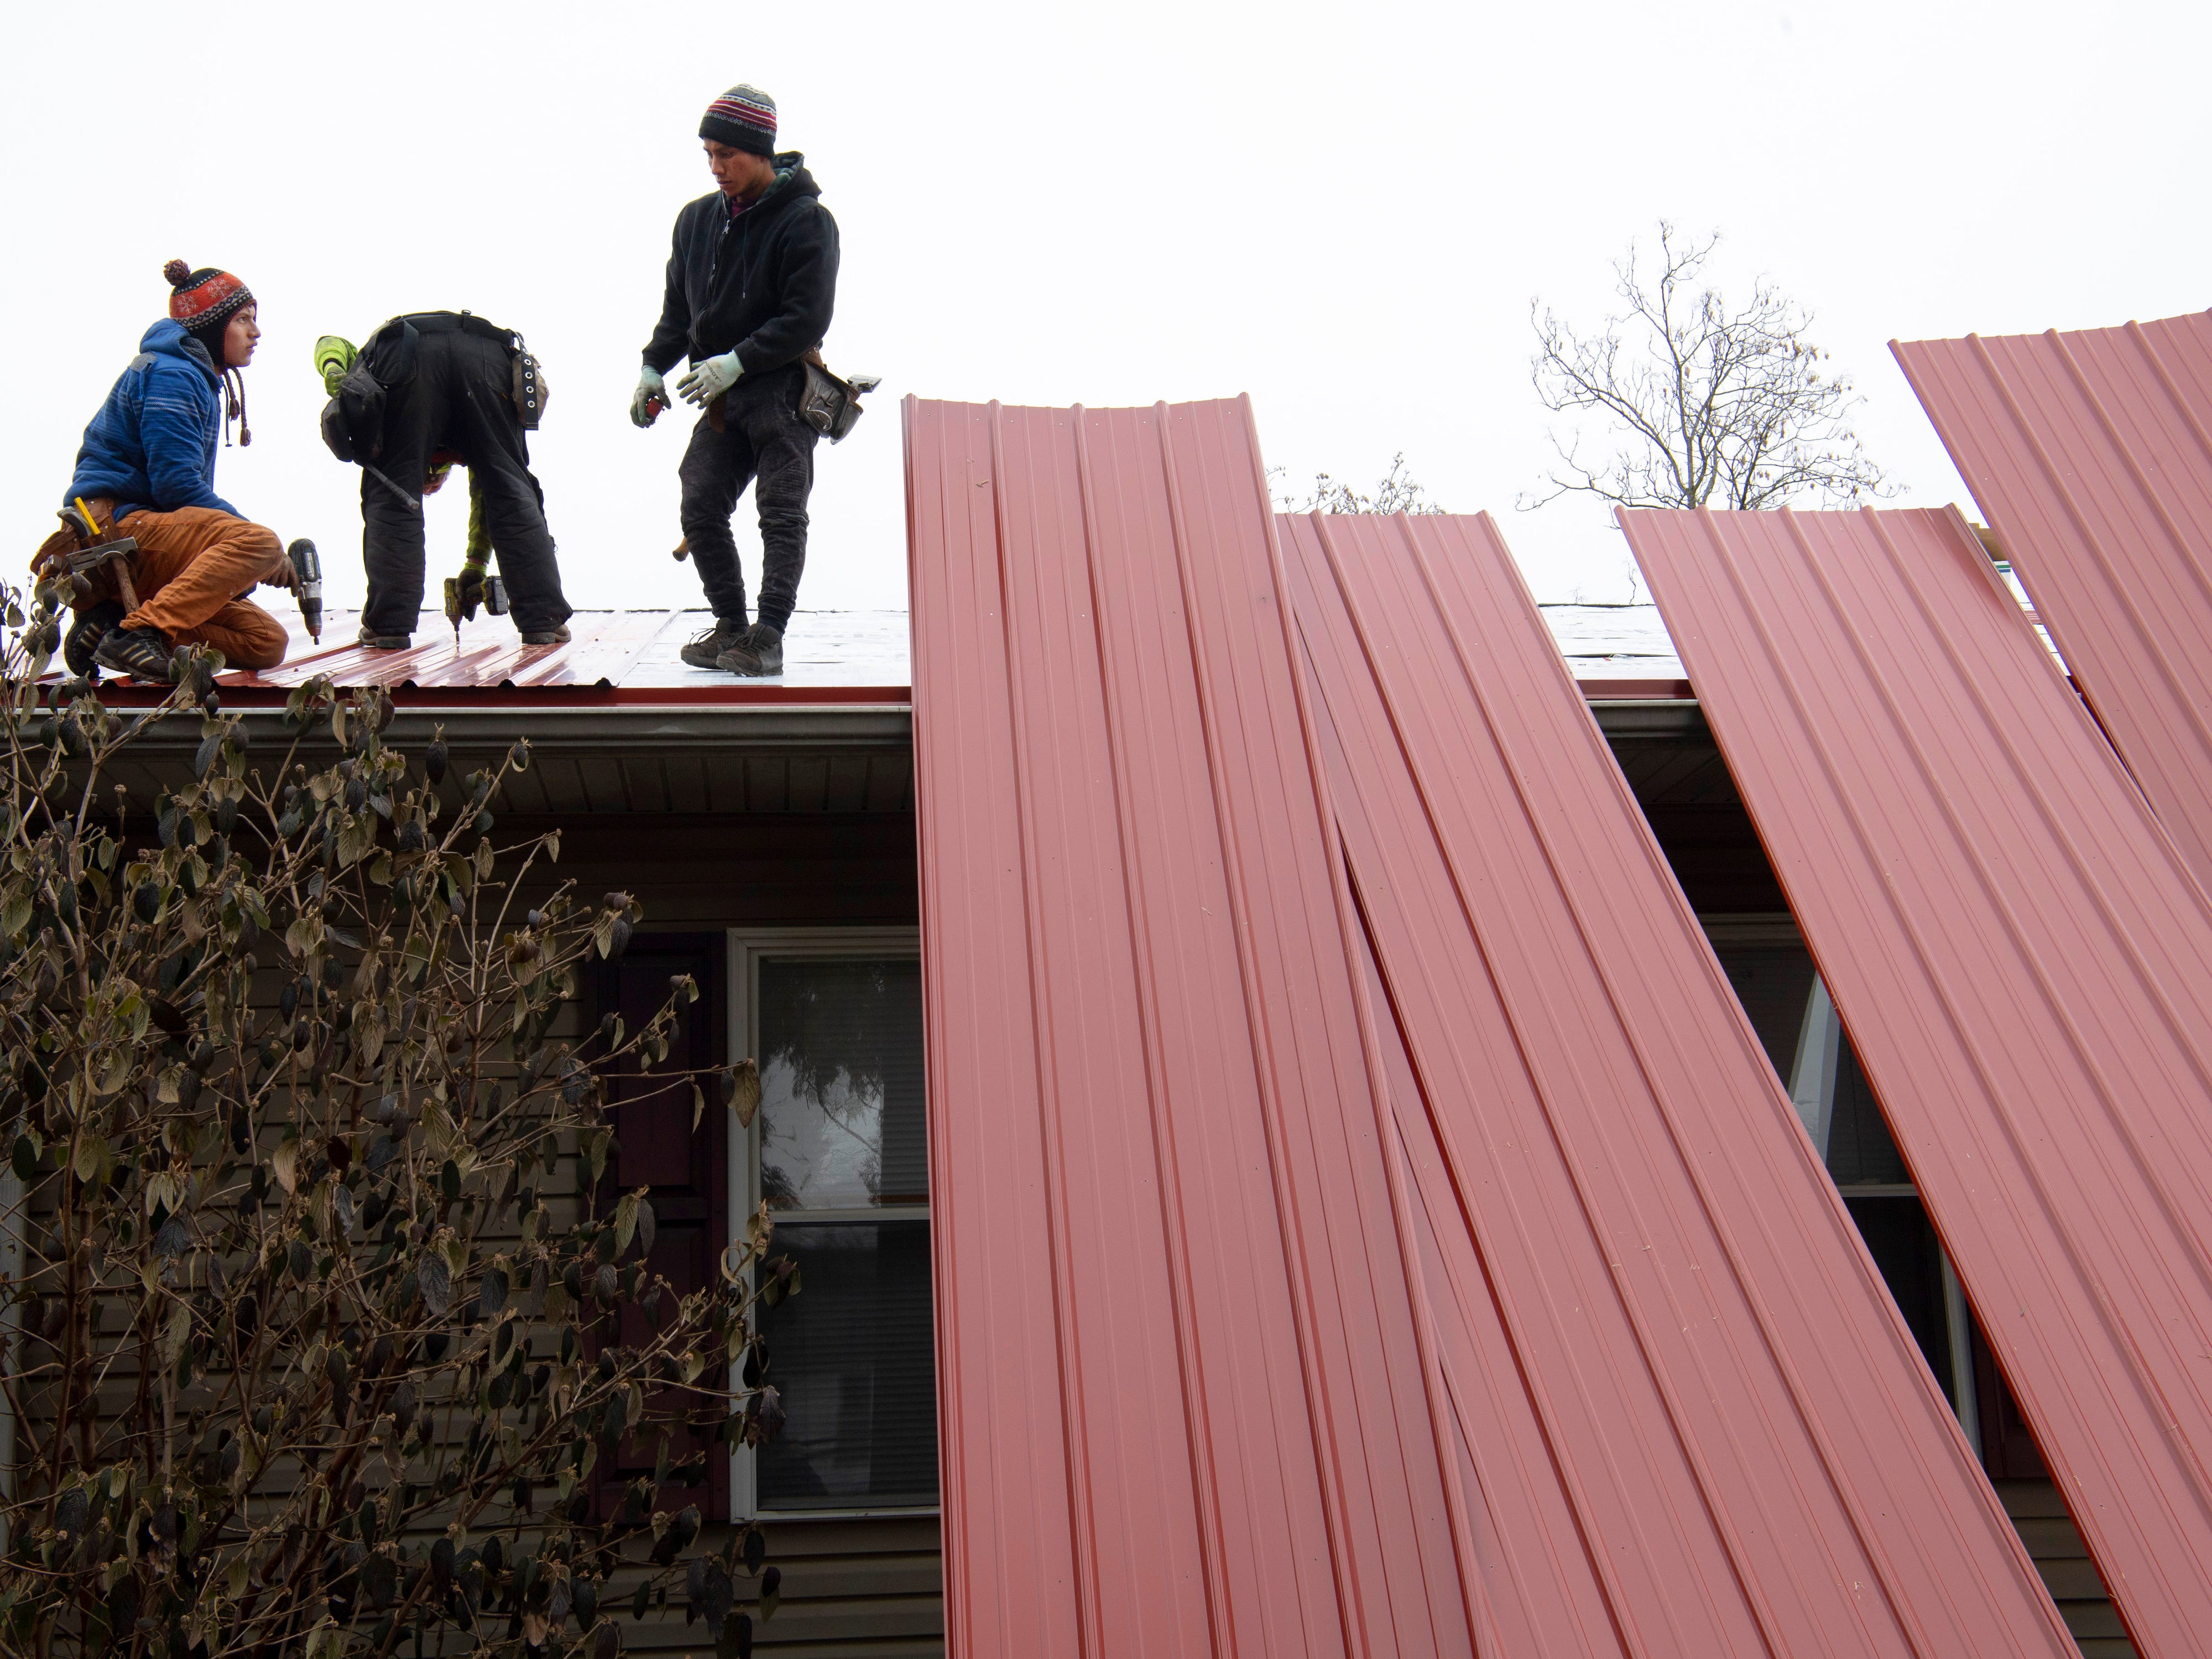 Roofers take advantage of a break in the weather to install steel roofing panels onto a North Side Evansville home Friday morning. The roofers, from left, Harley Matias, Jason Norton and Delmar Matias would be finished with the job by knock-off.